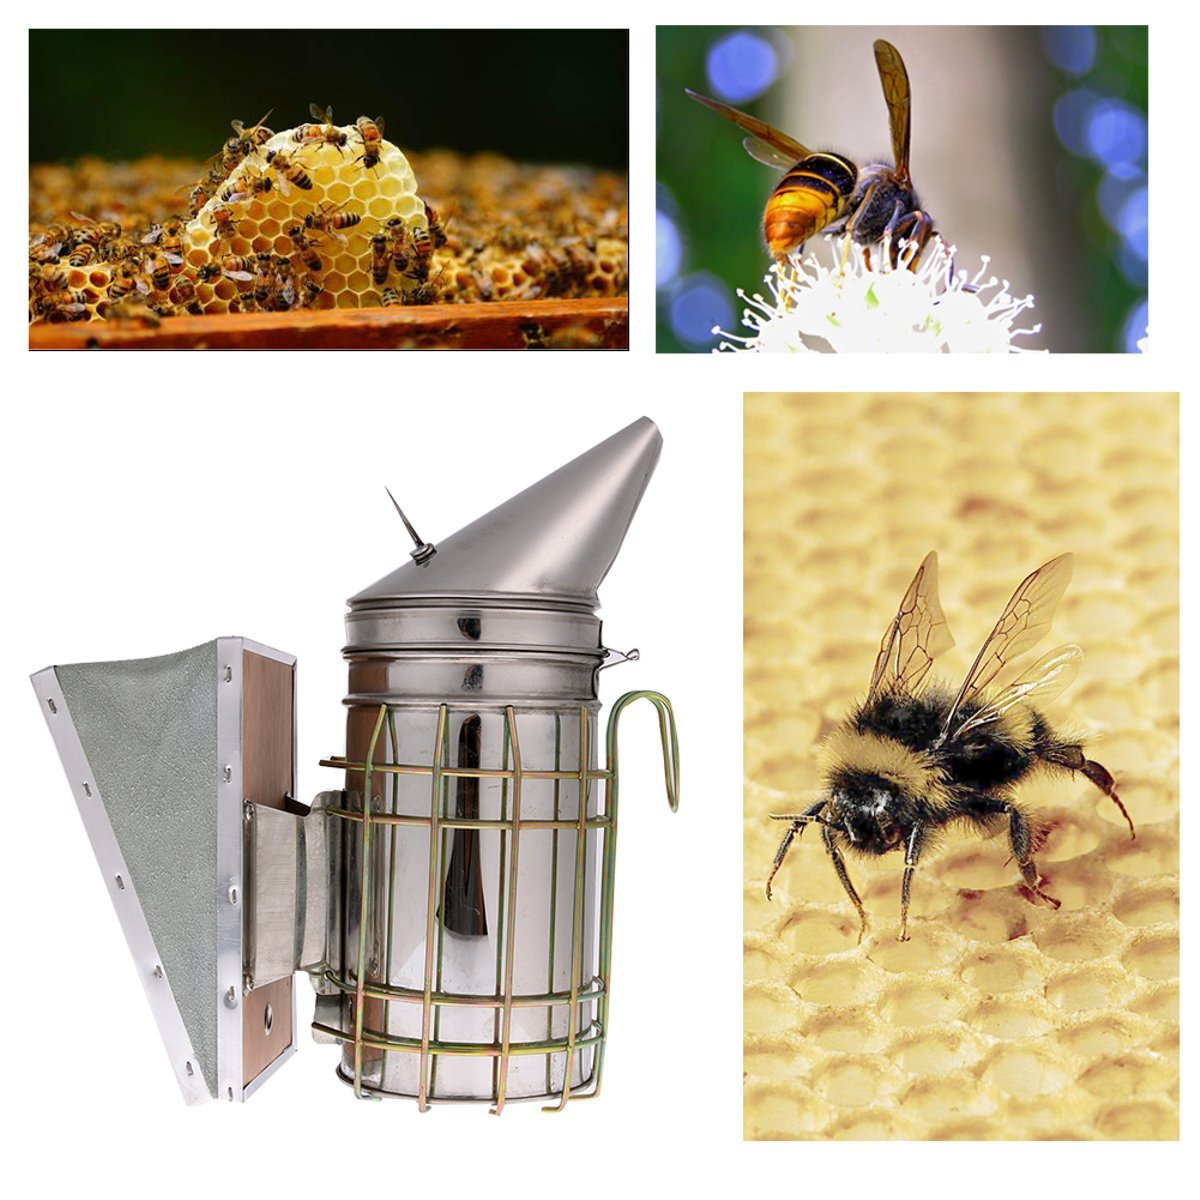 Tacoli Durable Bee Keeping Smoker Stainless Steel Bee Hive Smoker Small Galvanized with Heat Shield Board Beekeeping Equipment tool